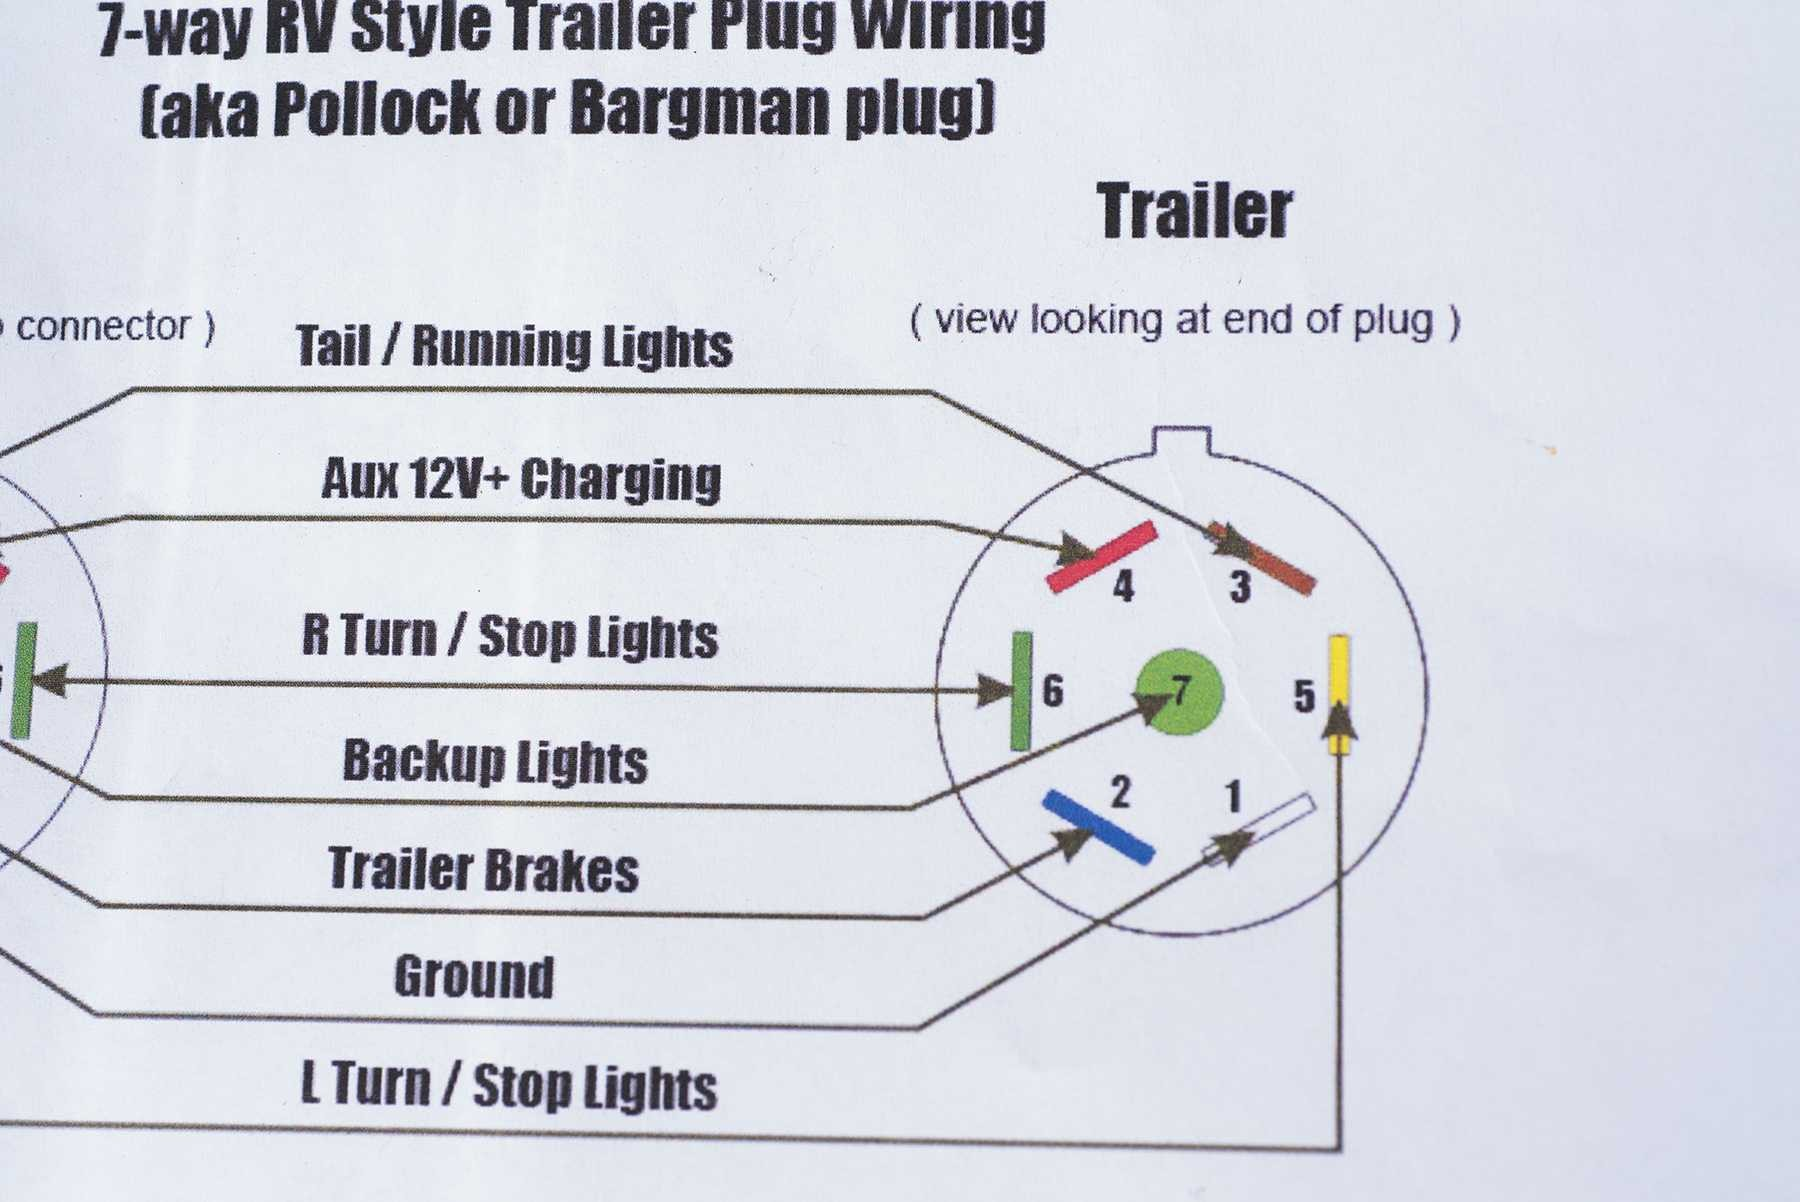 Car Trailer Plug Wiring Diagram 7 Wire Trailer Plug Diagram Wiring Diagram Tearing In Wiring Afif Of Car Trailer Plug Wiring Diagram